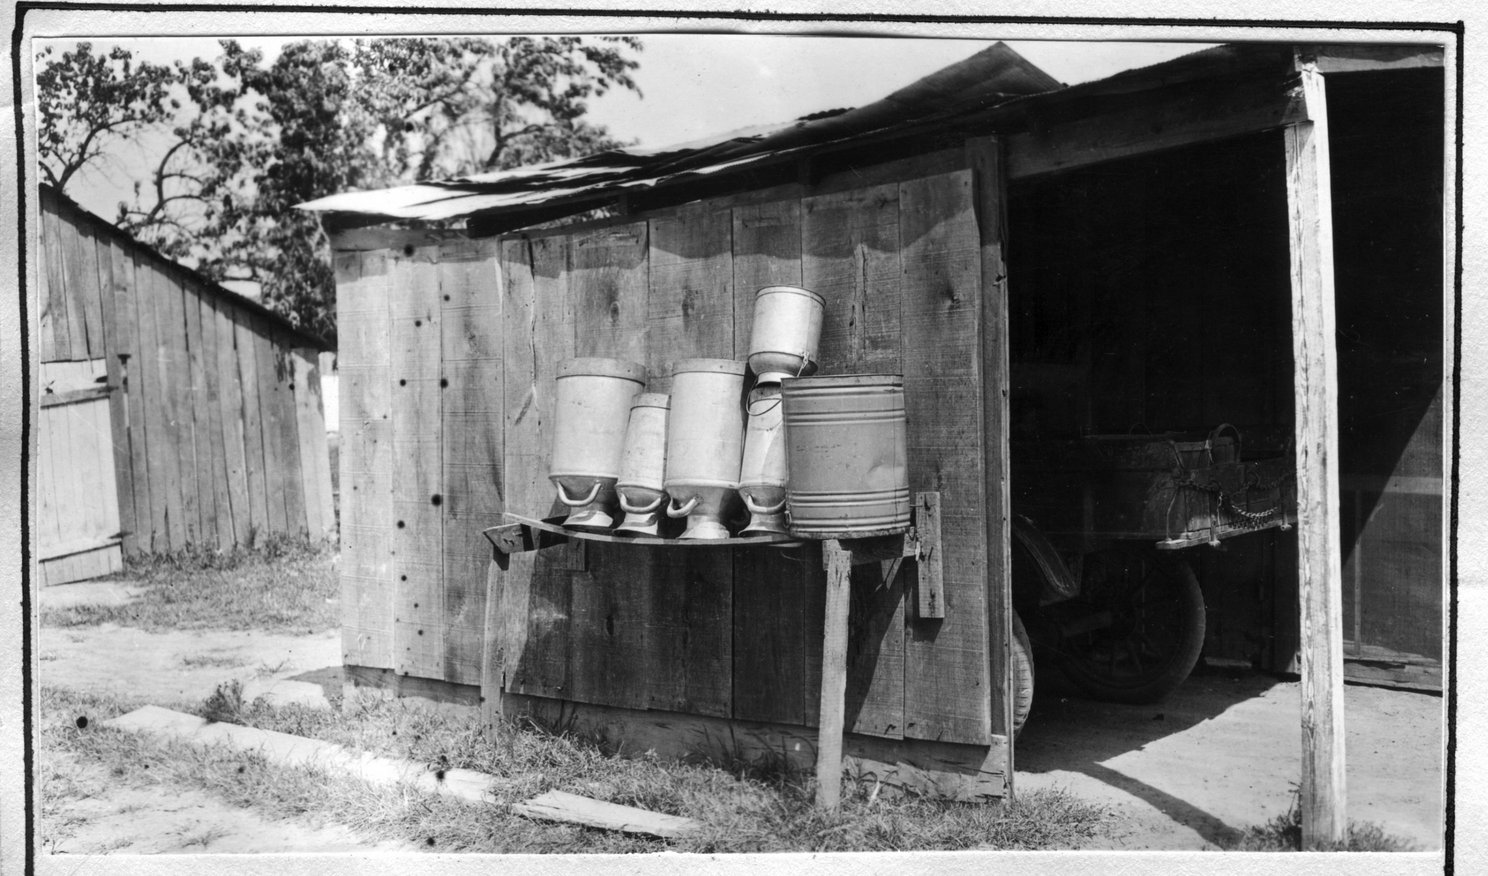 101~Farrar and Gresham Milkhouse Aug 1920.jpg